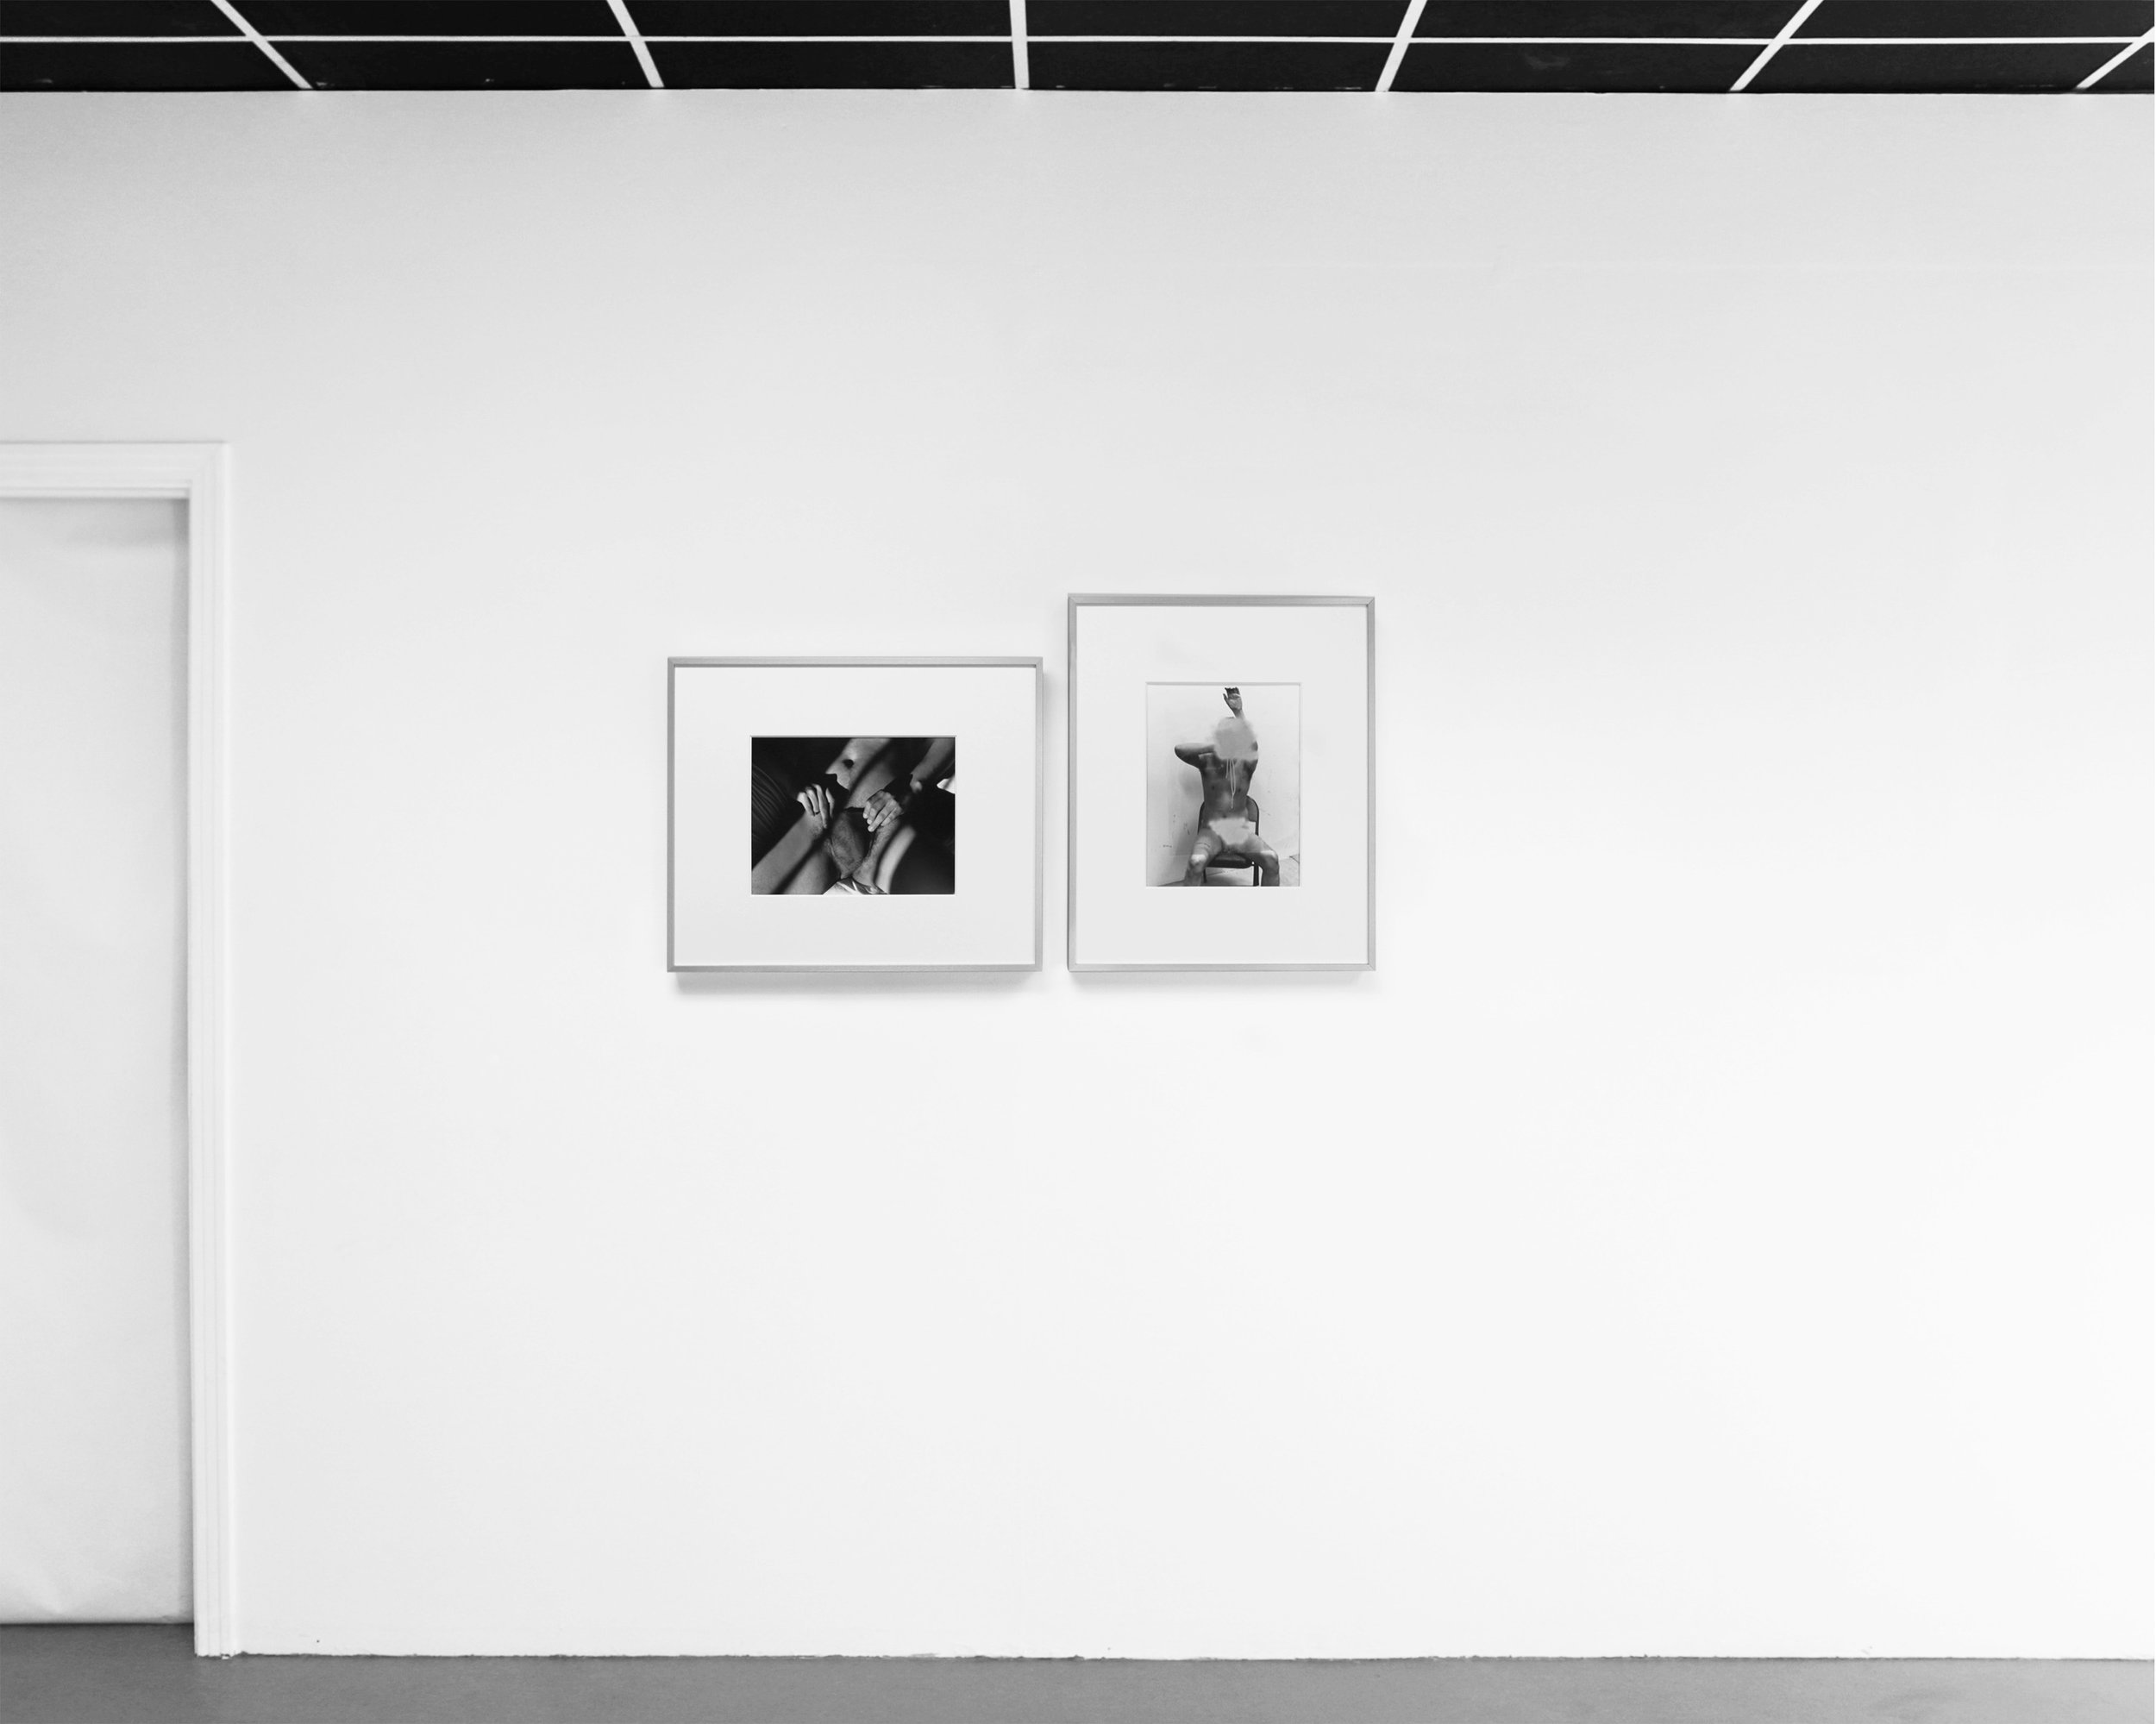 Installation View:  Revealed (& Redacted) + Untitled (Spray Censor),  11 x 14 Gelatin silver prints in 20 x 24 frames, 2019